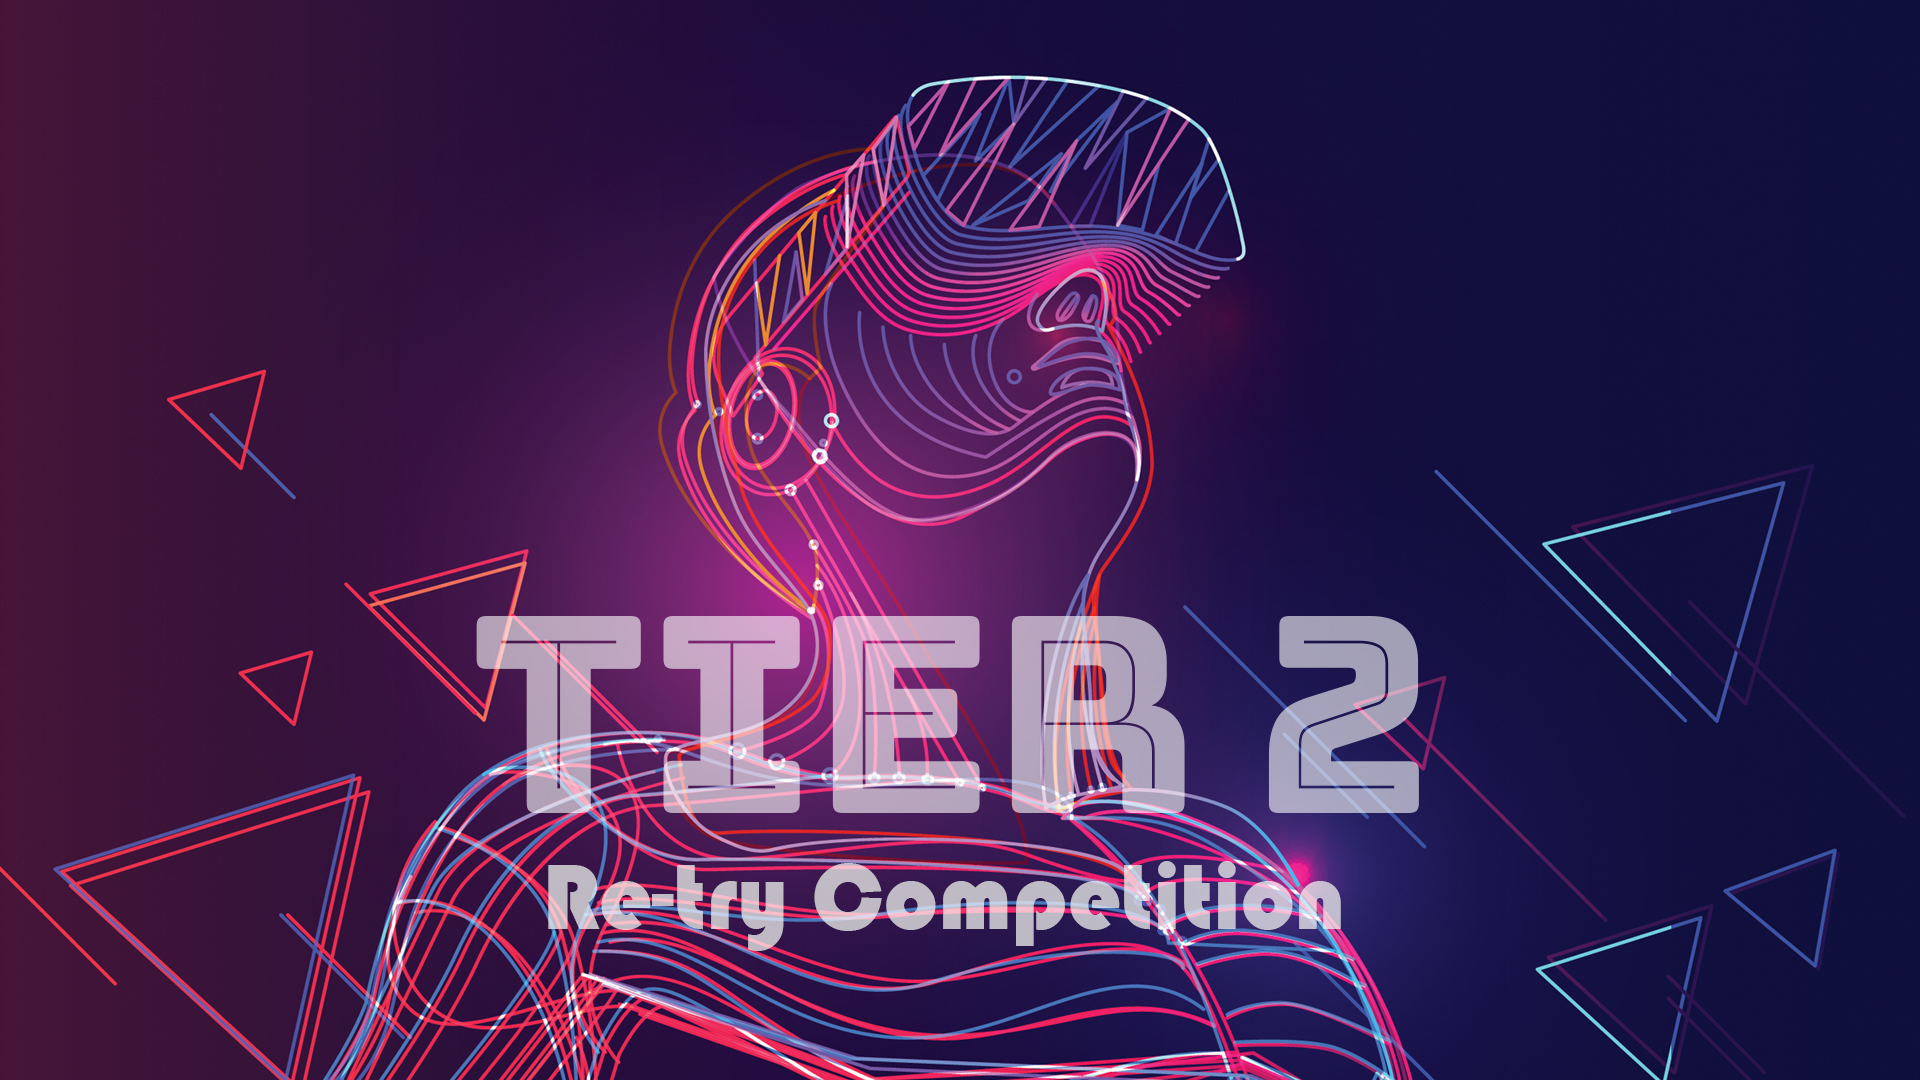 Ready Student One_Website Box_Tier 2_Re-try Competition